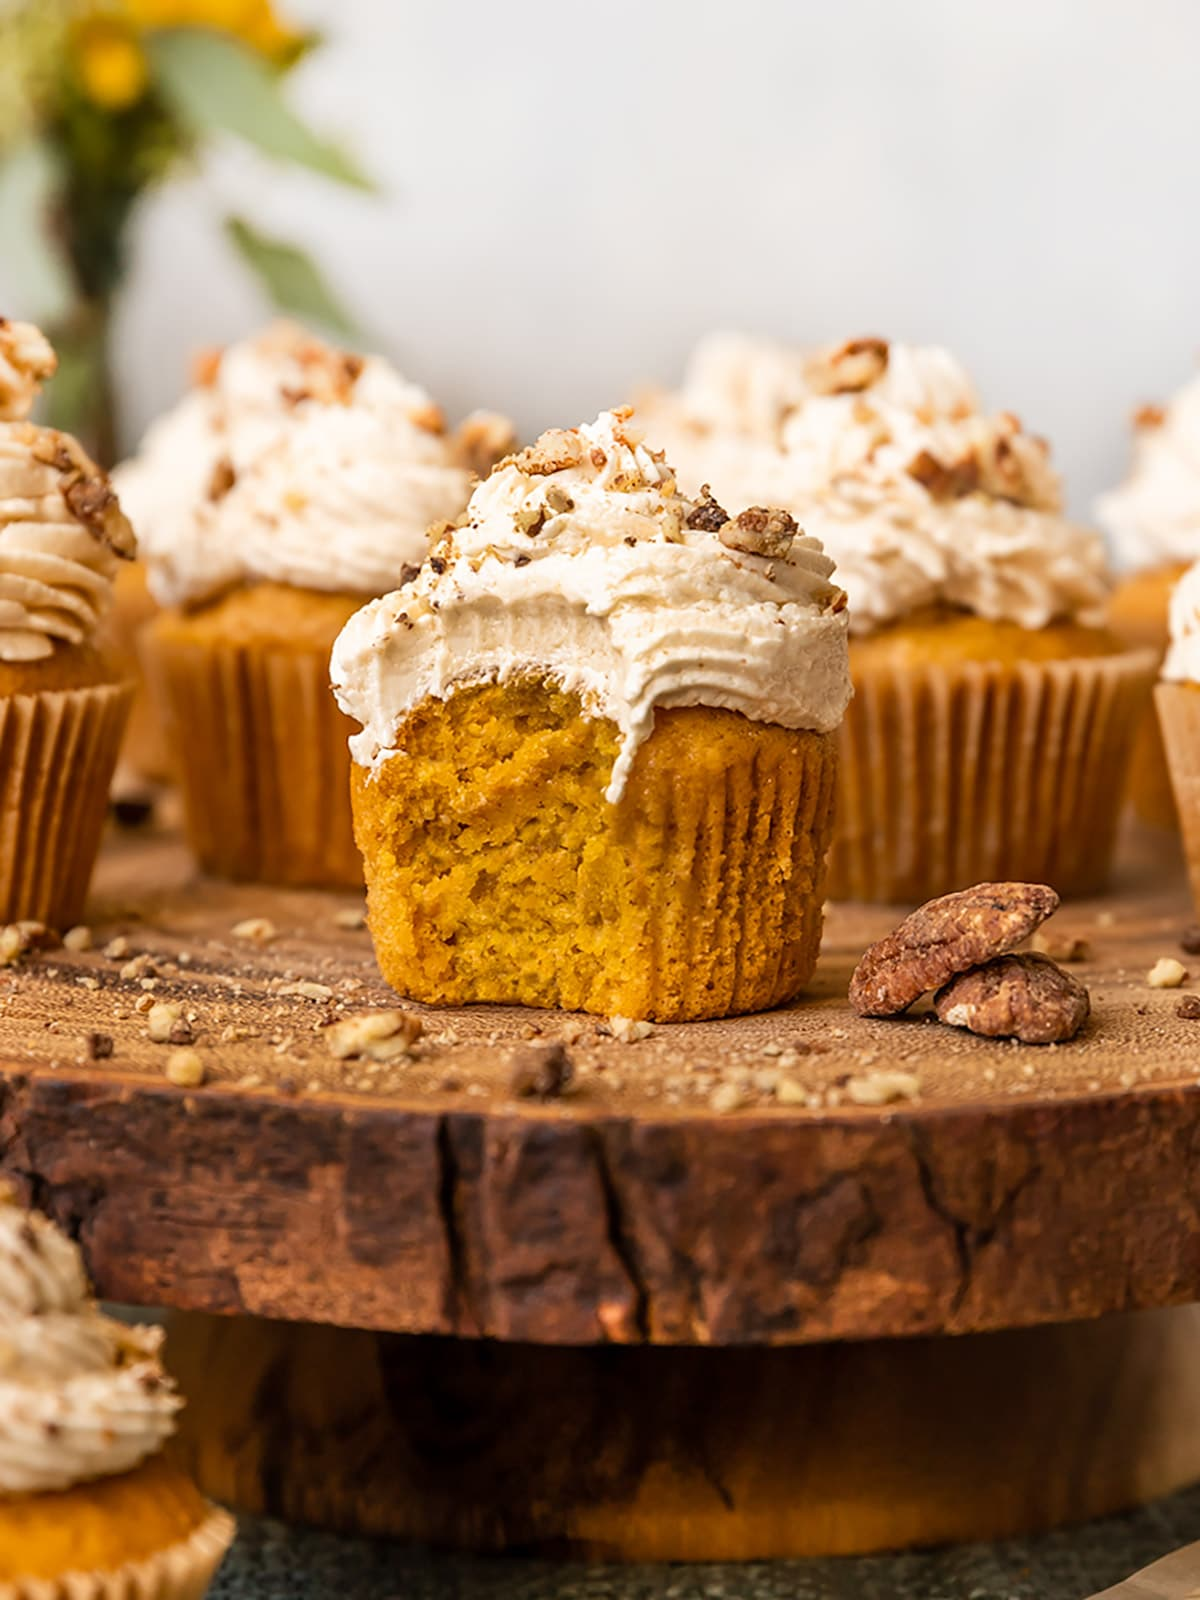 a pumpkin cupcake with a bite taken out to show inside texture